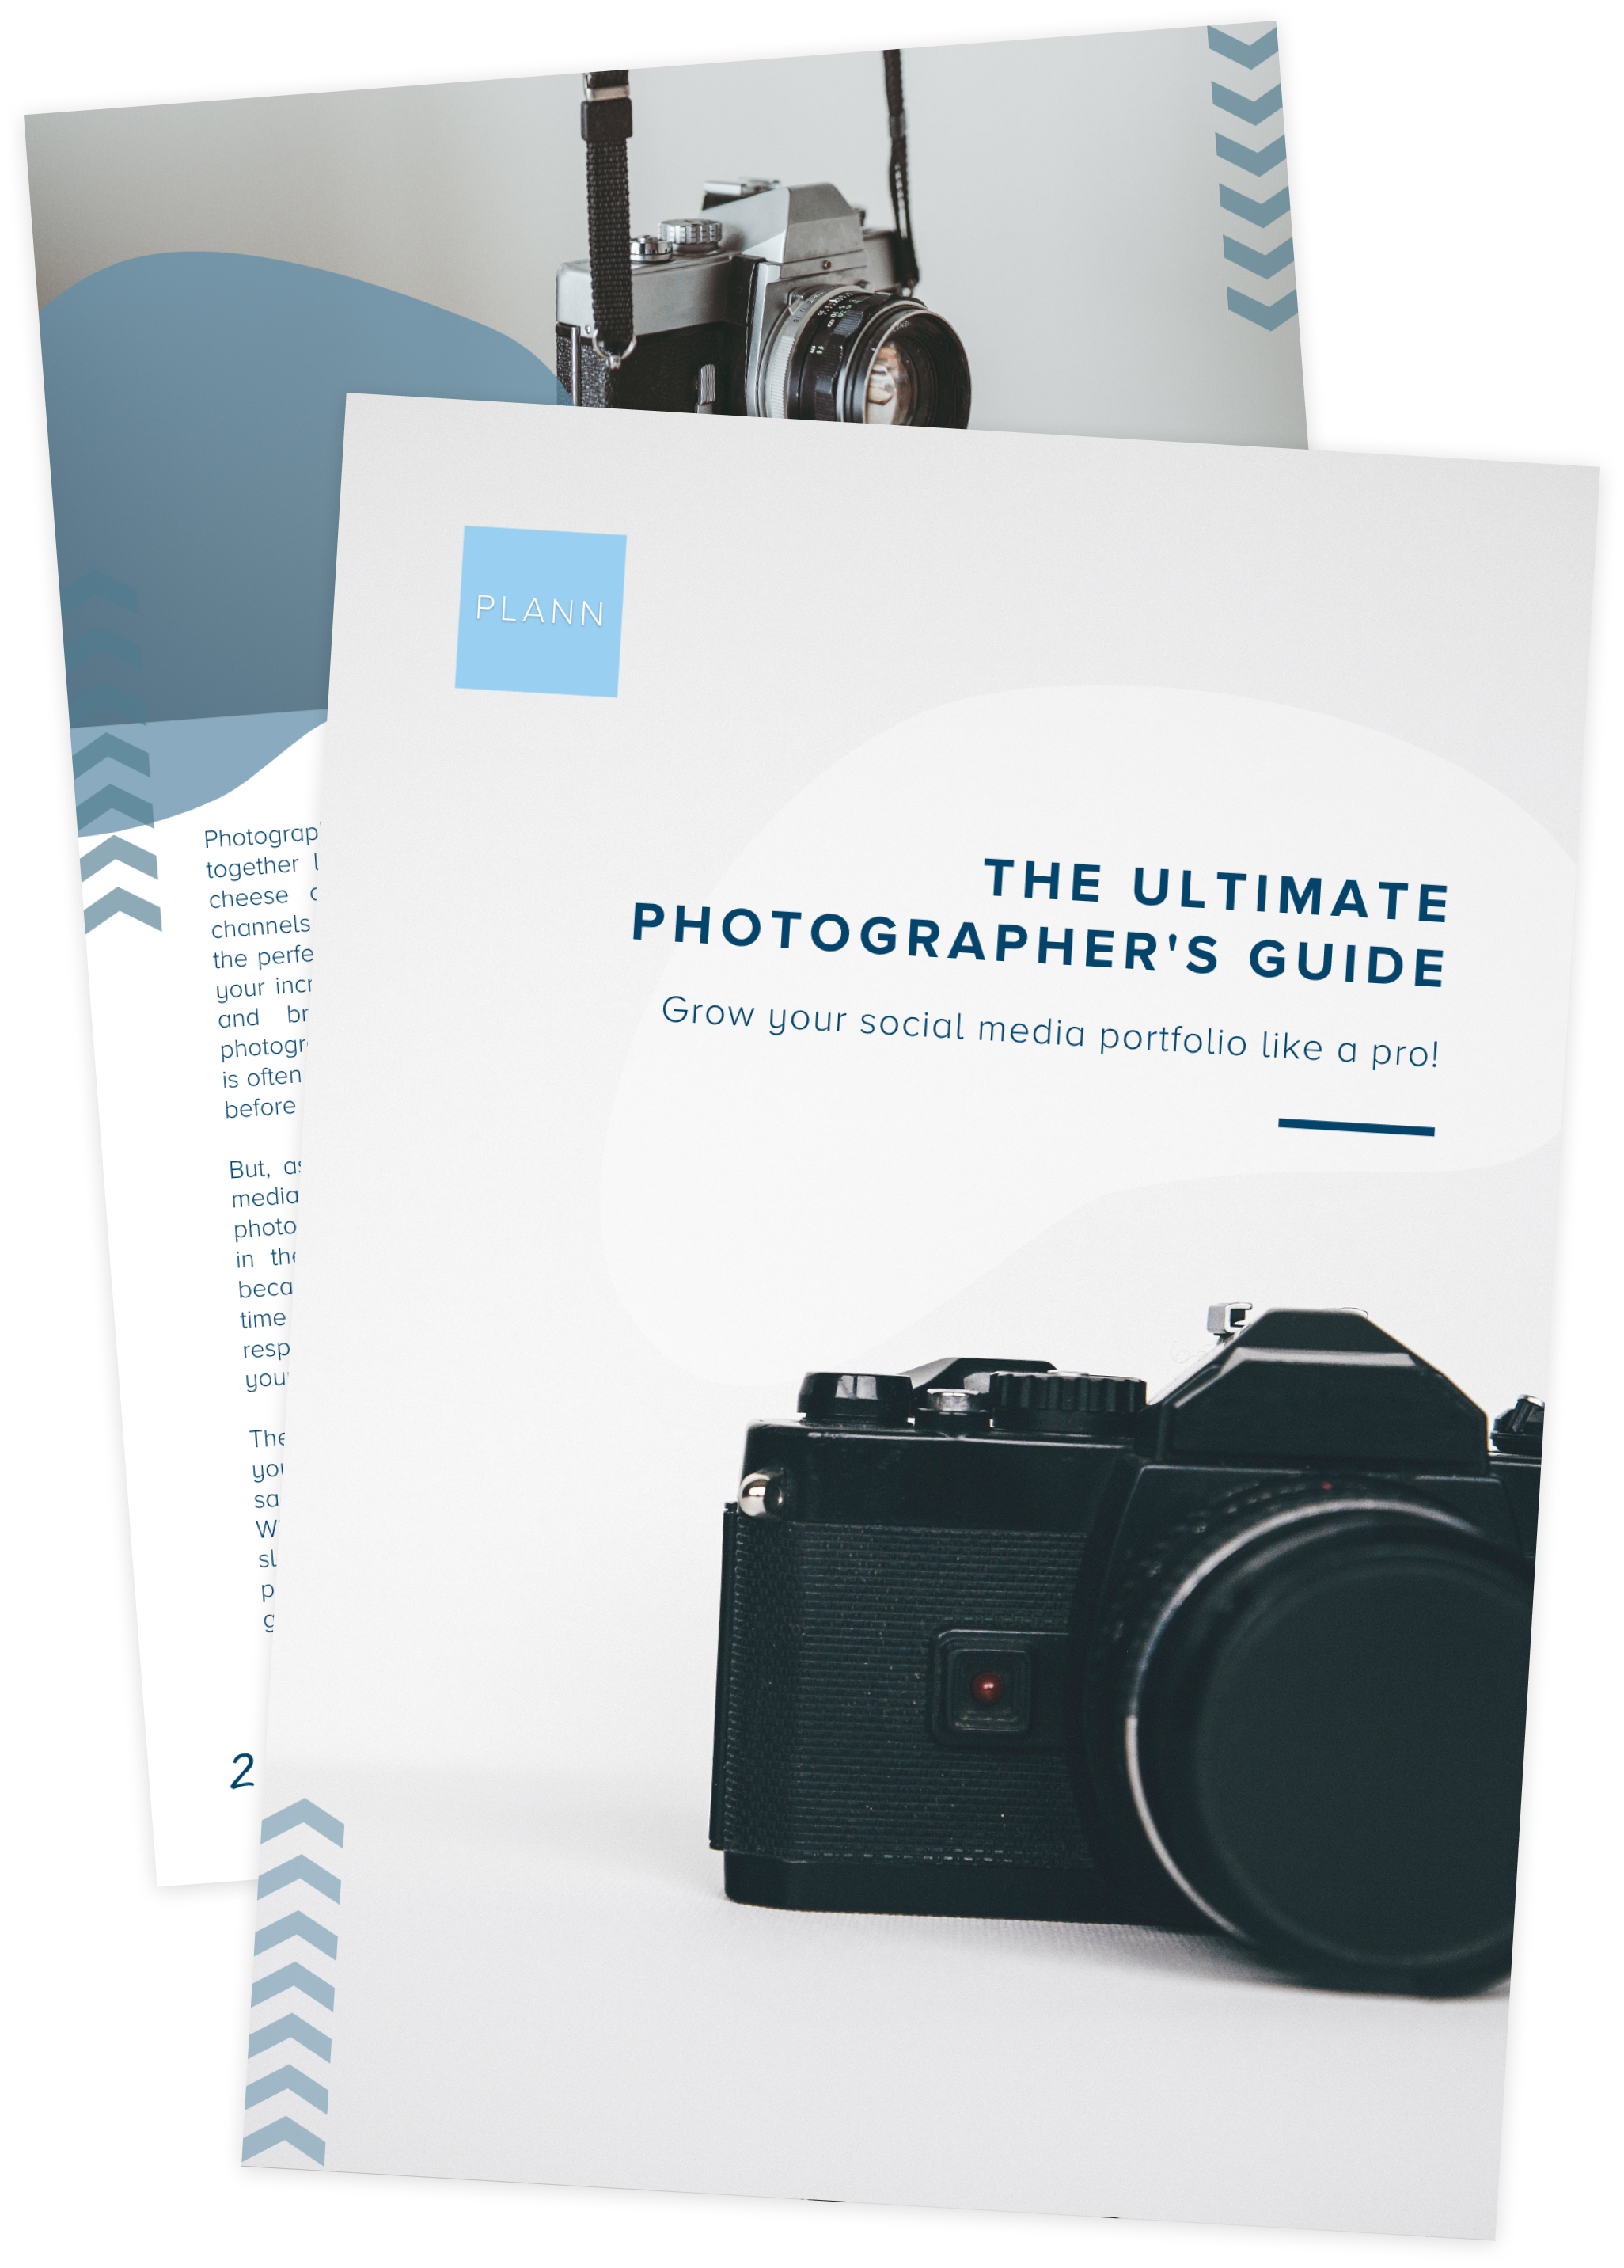 The Ultimate Photographer's Guide: Grow Your Social Media Portfolio Like A Pro